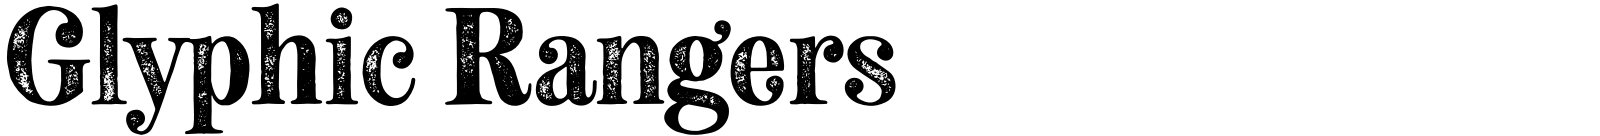 Neato Serif Rough